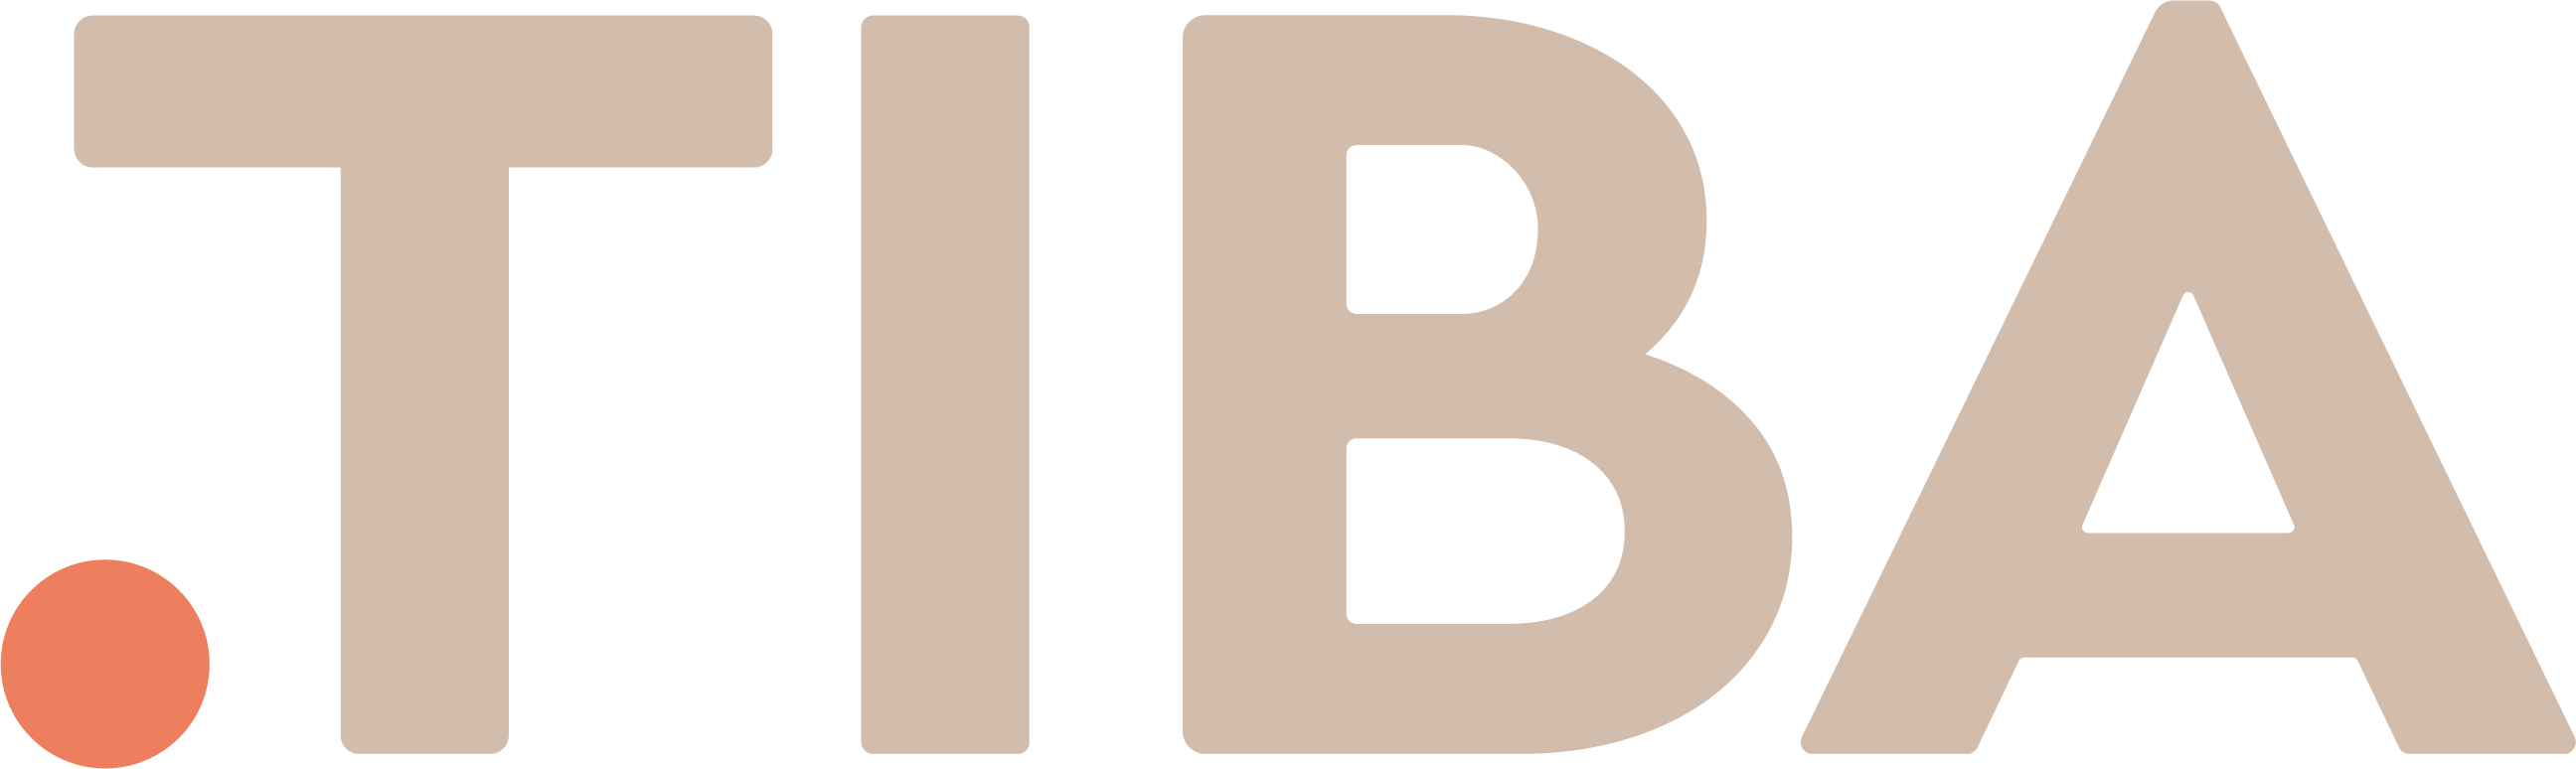 the .TIBA brandmark - A red dot followed by TIBA written in beige Cera Pro capital letters